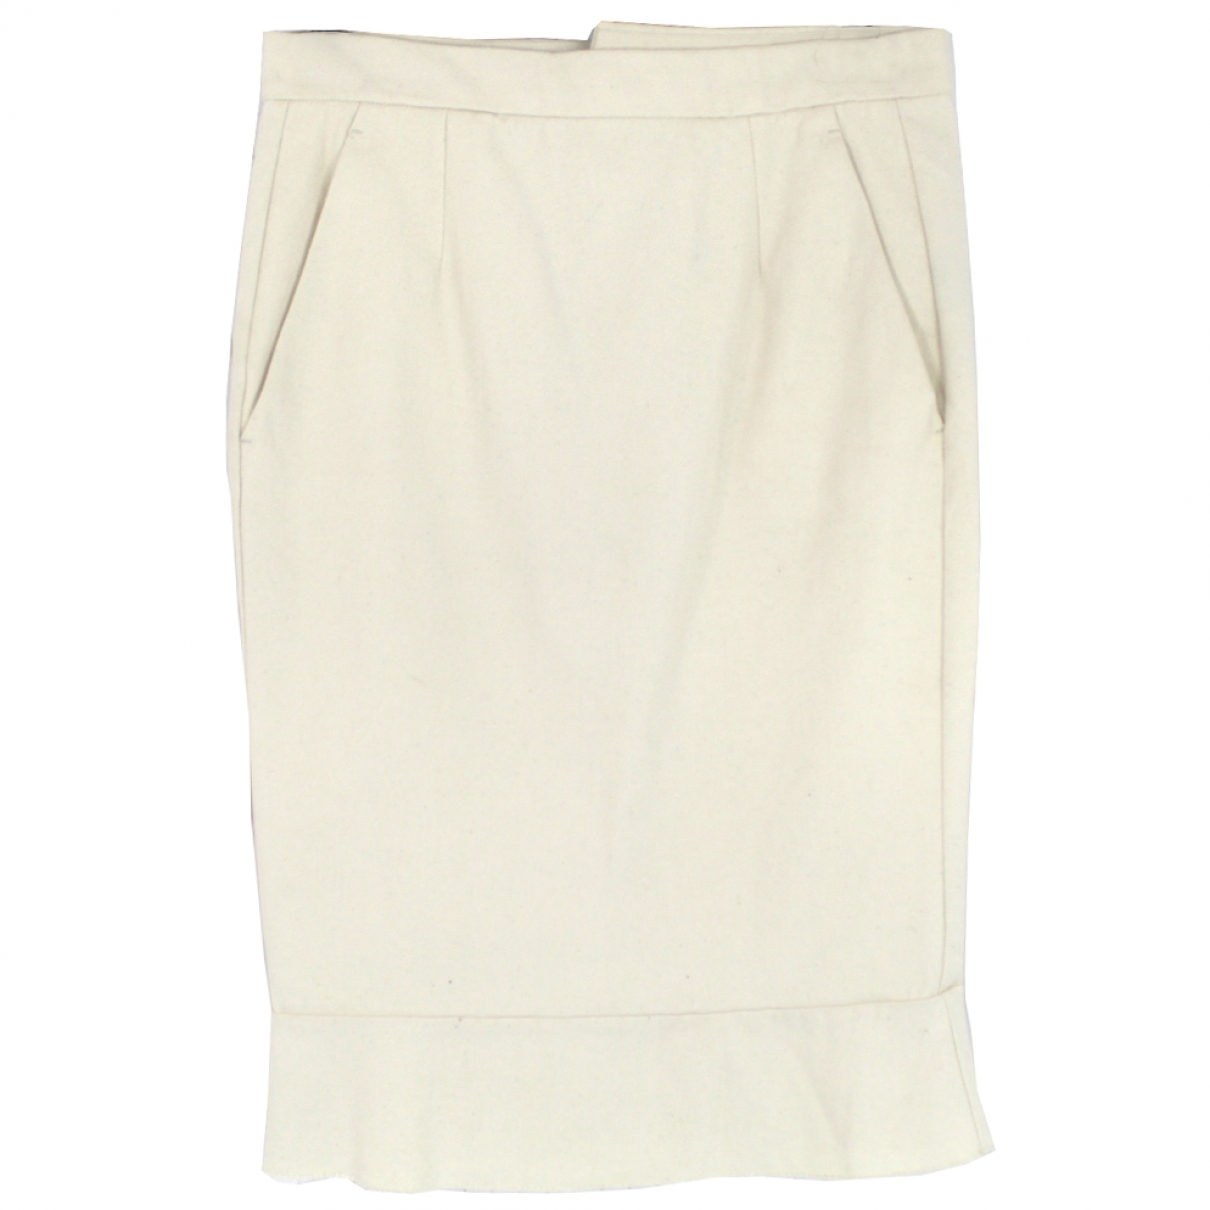 Isabel Marant \N Ecru Cotton skirt for Women 38 FR